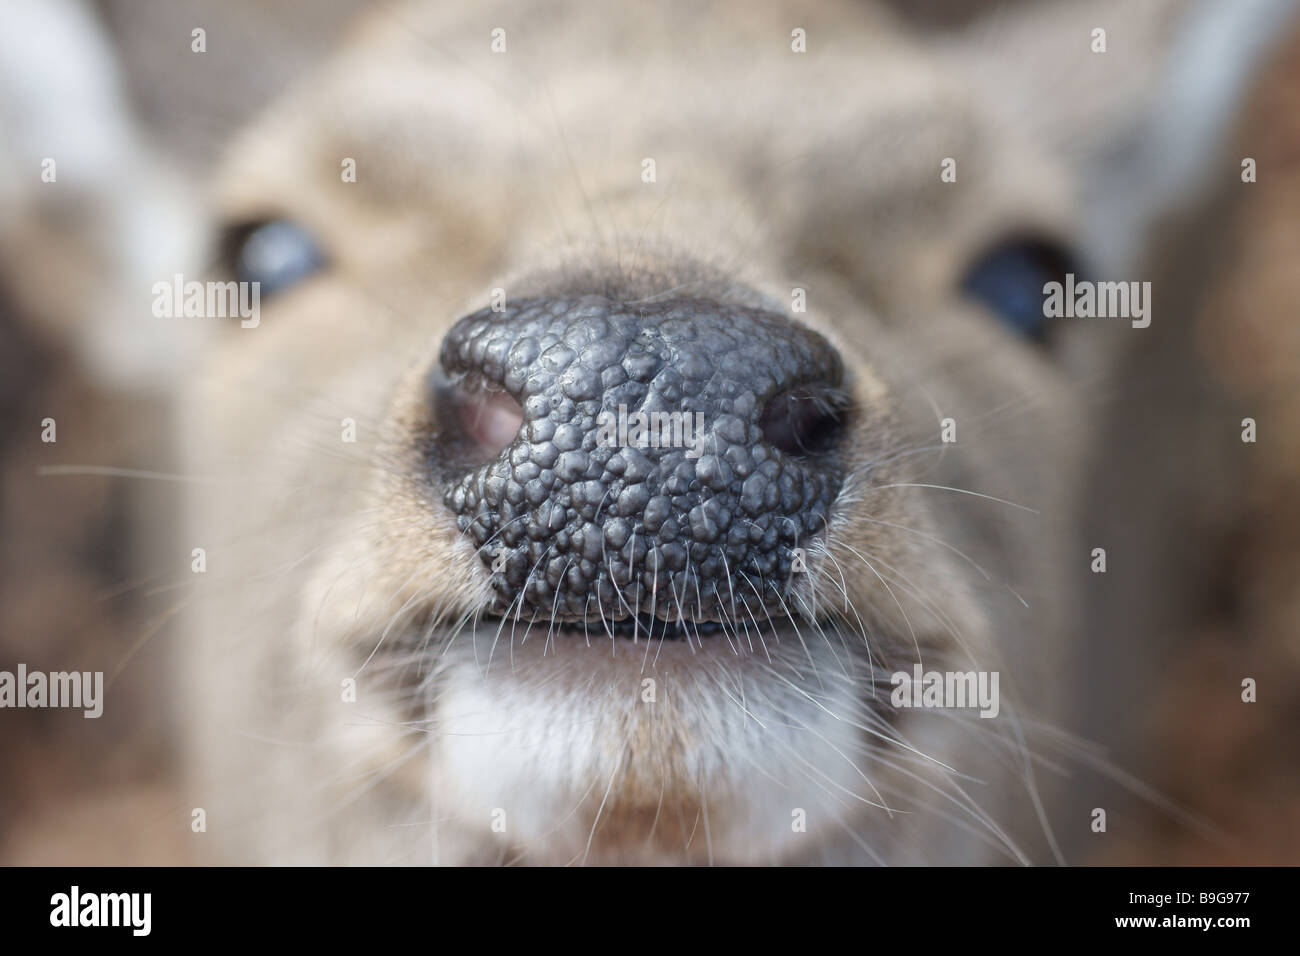 Male Japanese Sika deer up close and personal Stock Photo